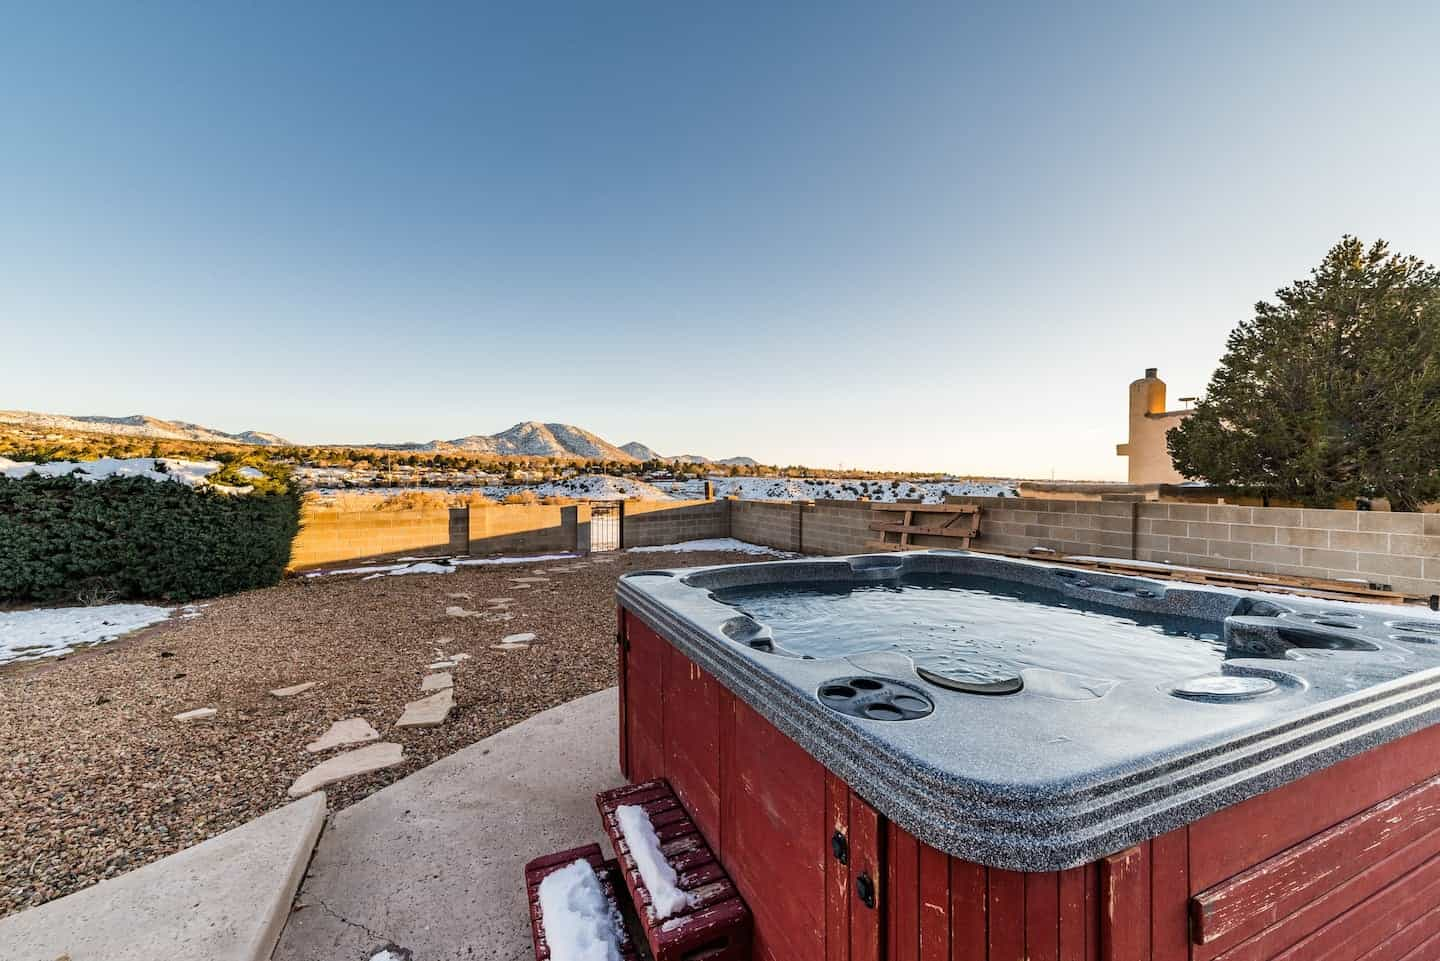 Image of Airbnb rental in Albuquerque, New Mexico